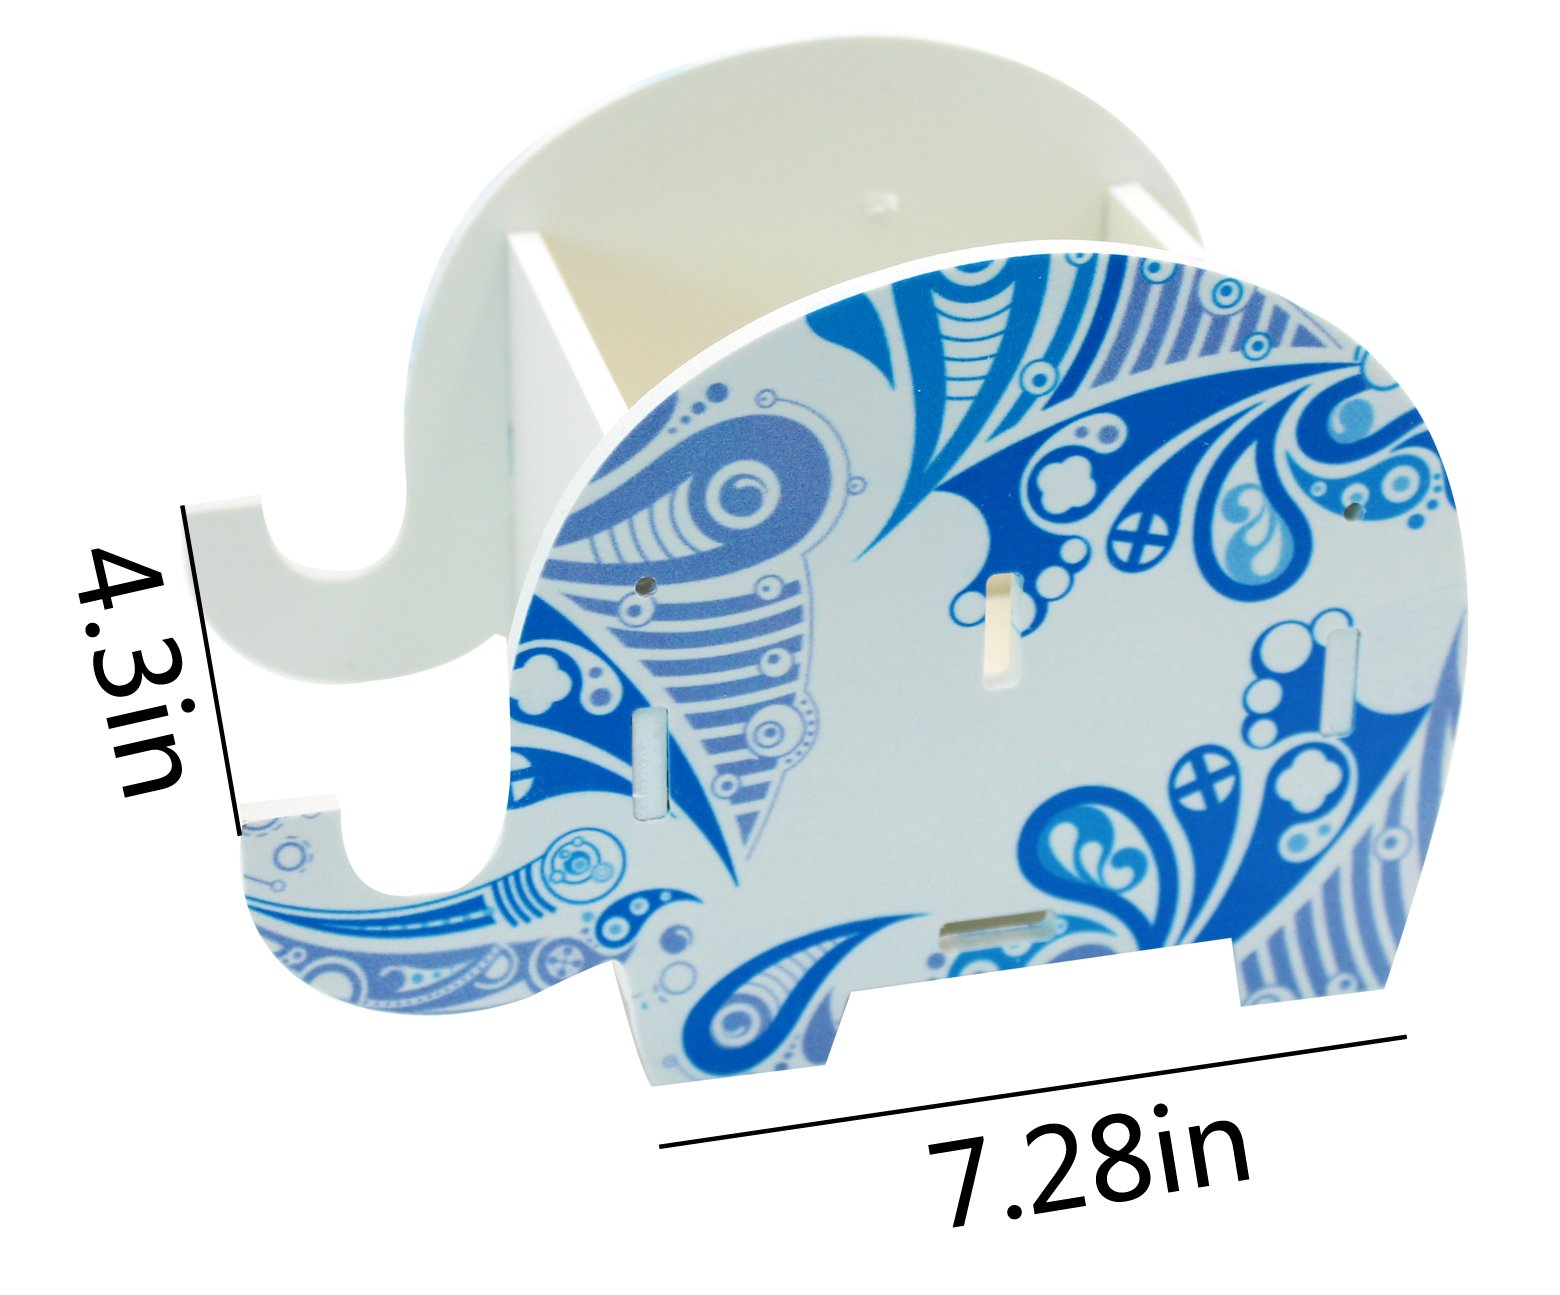 Cute Elephant Pen Pencil Comestic Stationery Holder Cell Phone Stand Multifunctional Storage Box Business Card by KINGSEVEN (Image #6)